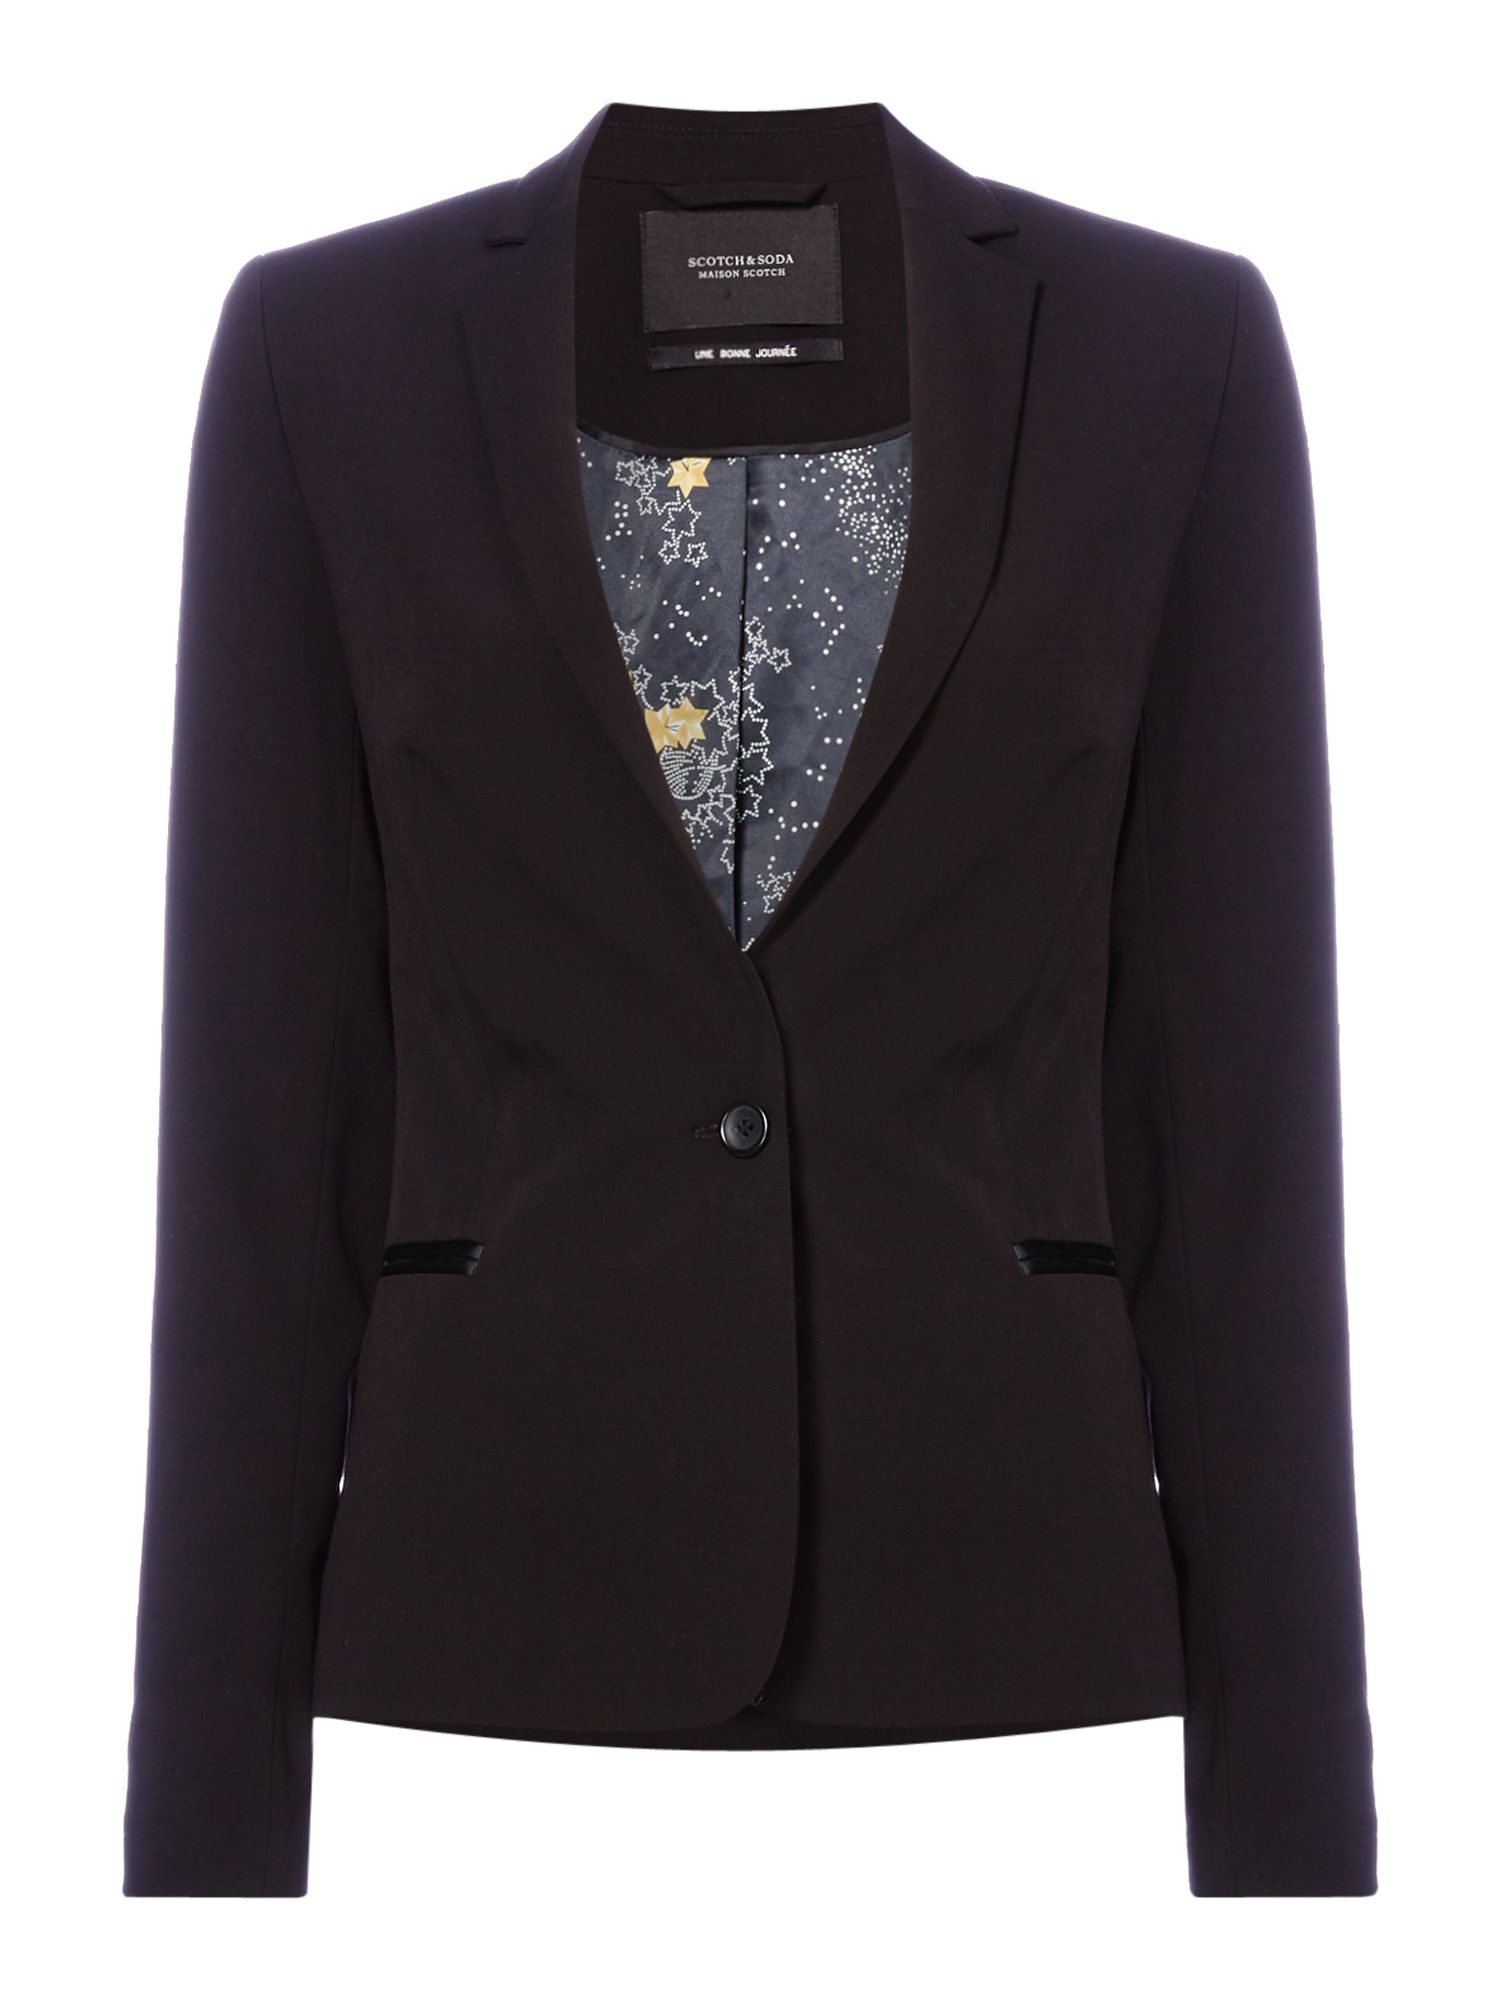 Maison Scotch Classic blazer with star lining, Multi-Coloured